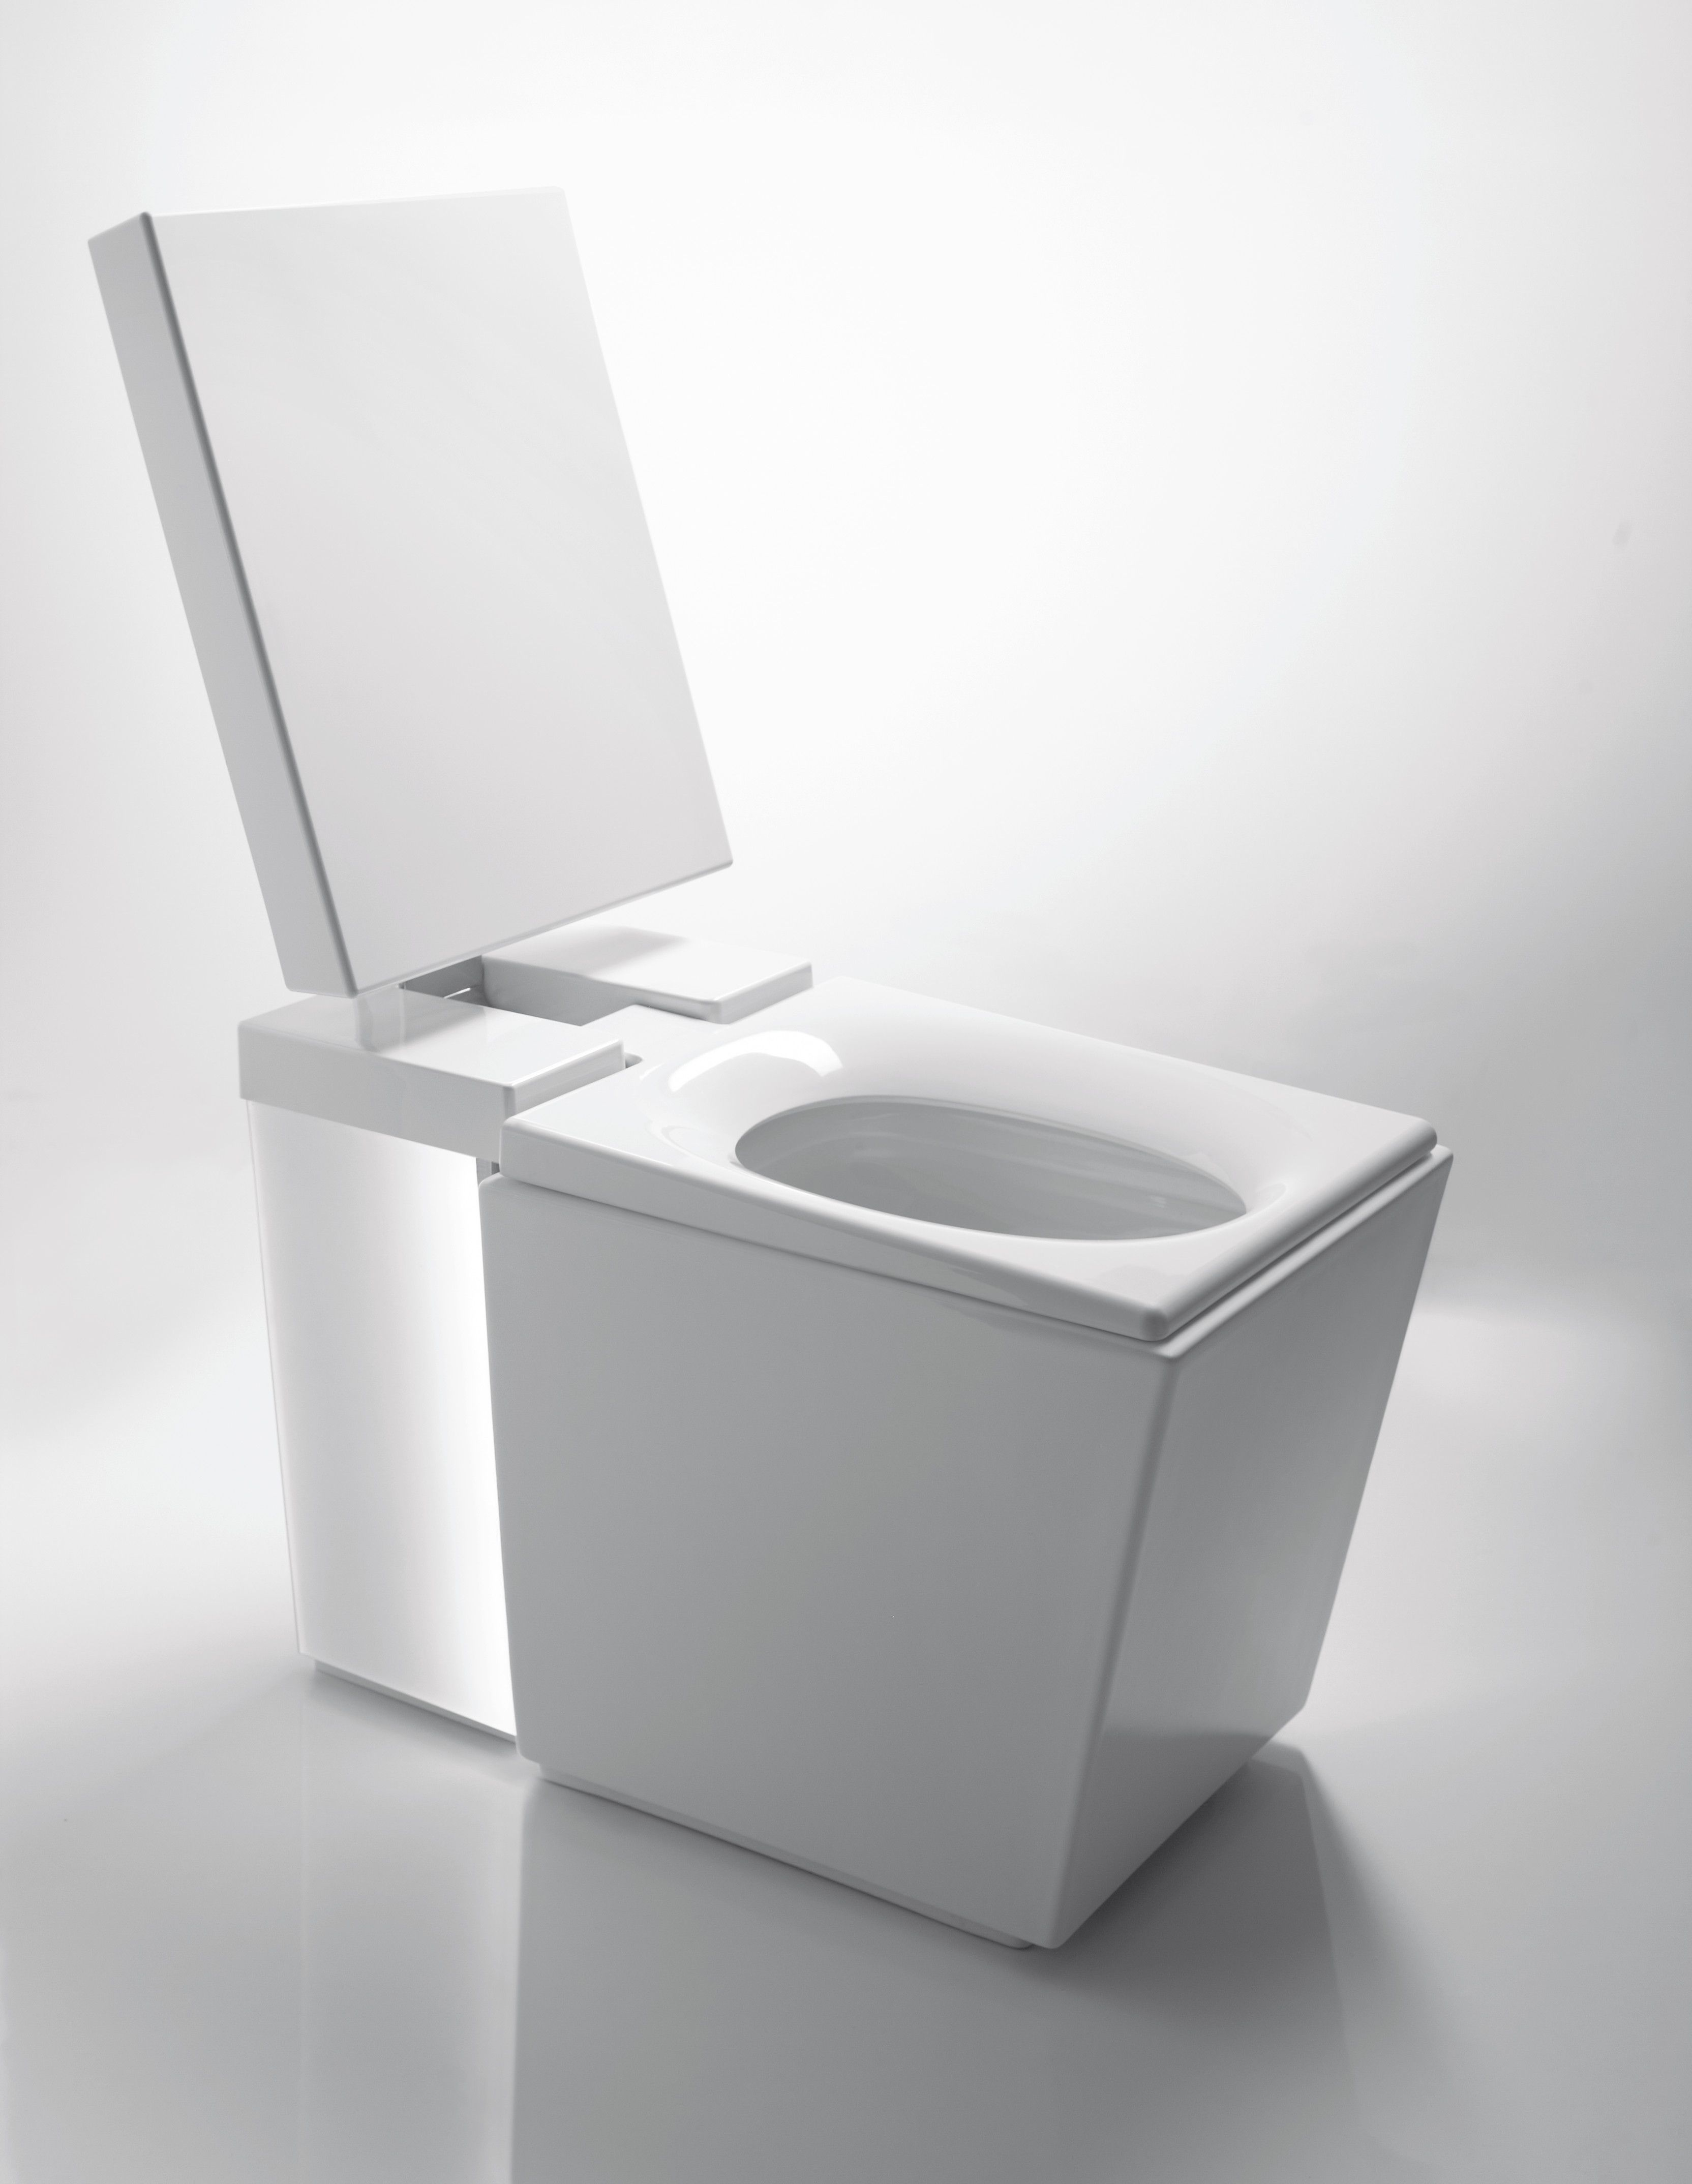 The Bathroom of the Future | Toilet, Remote and Sprays